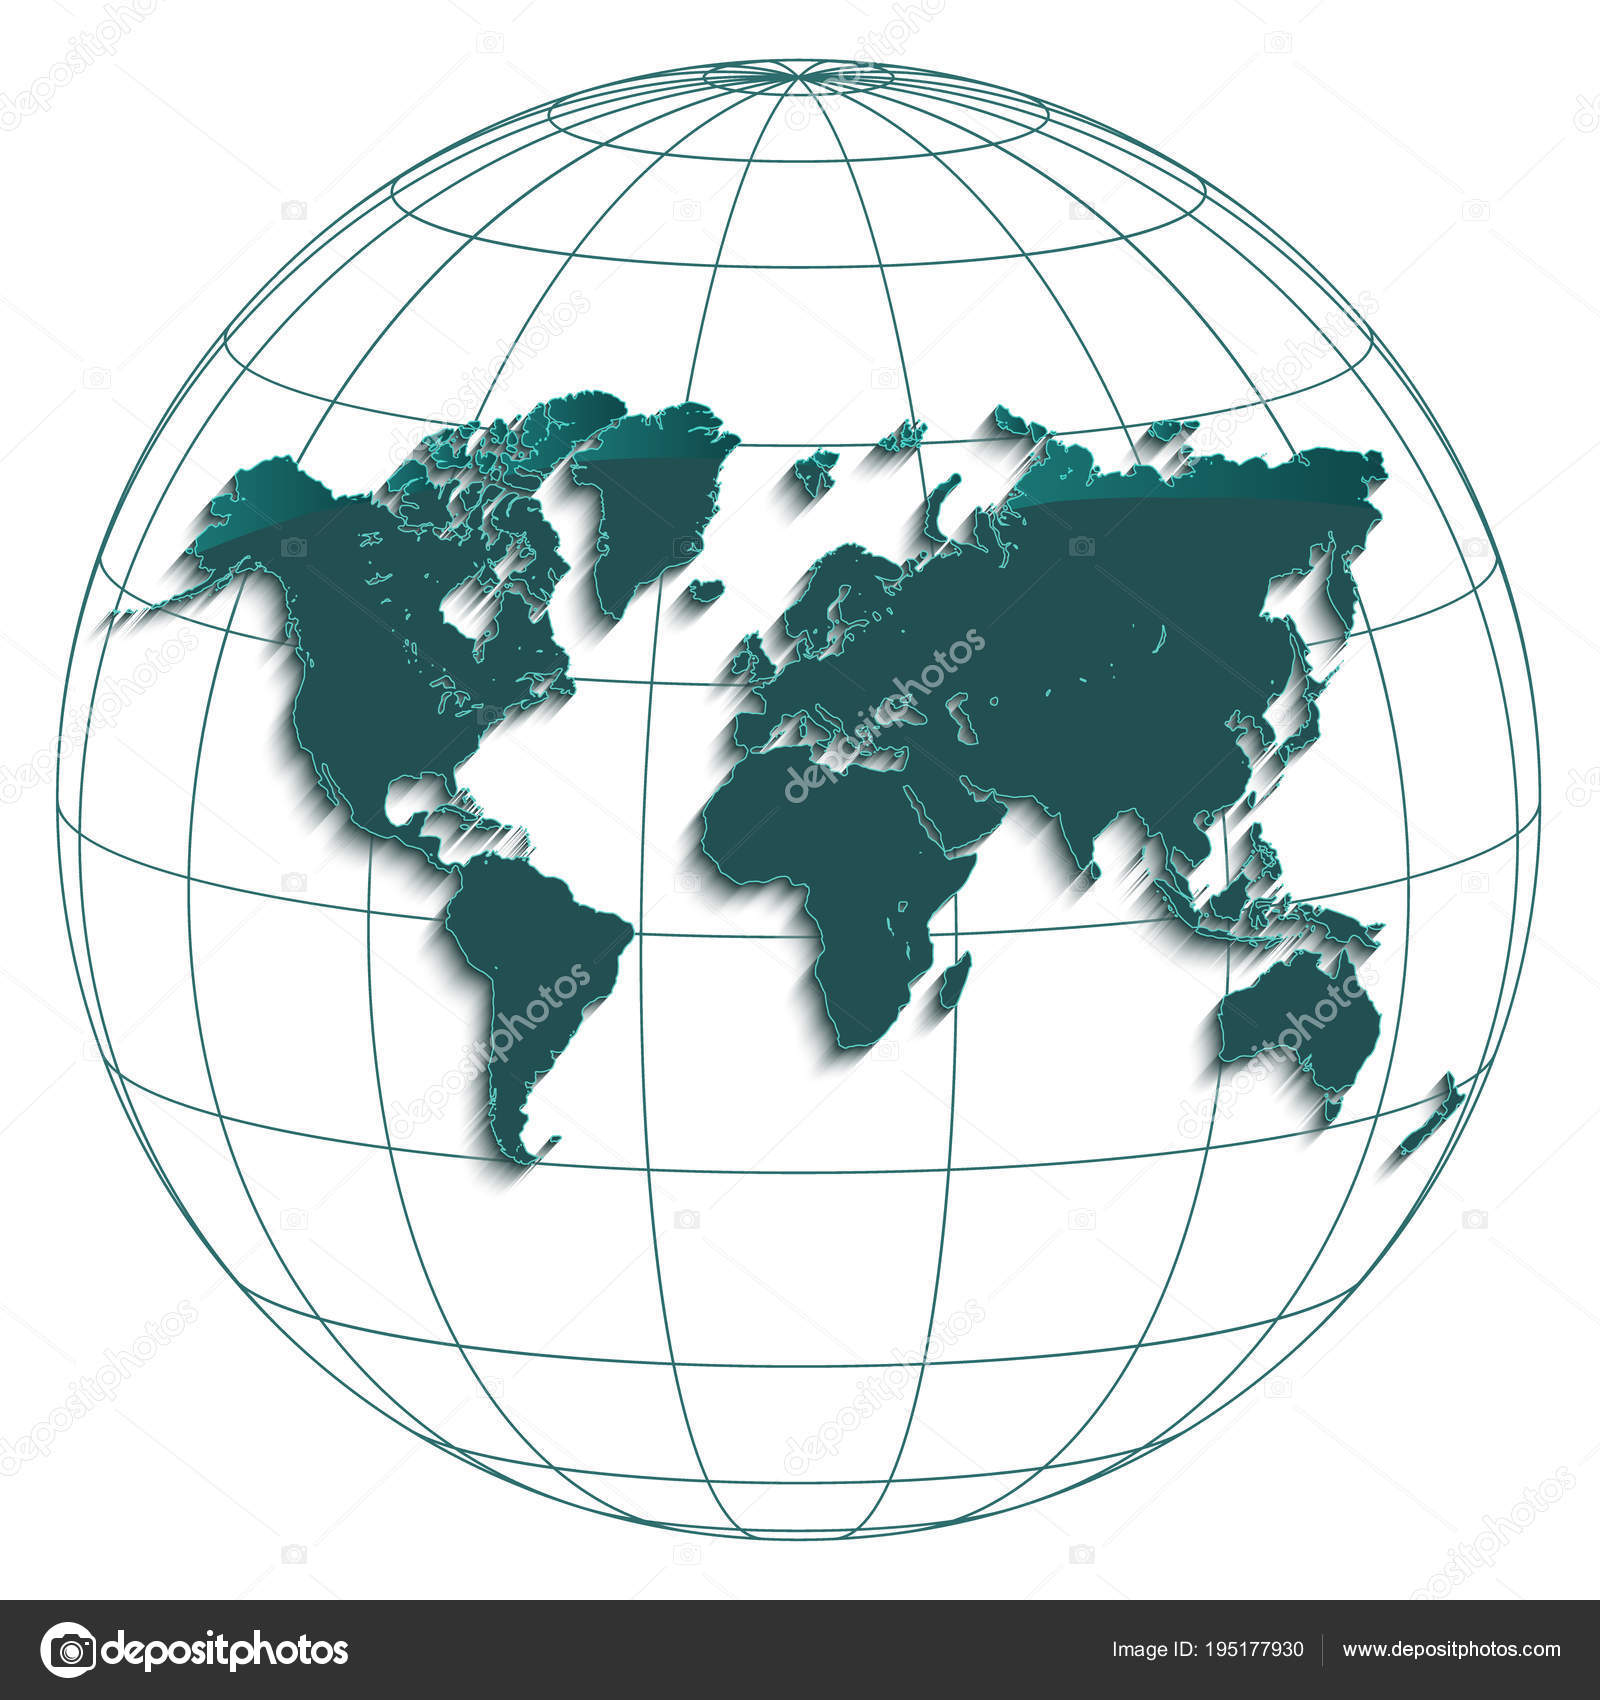 World map globe earth globus geographic coordinates white background world map globe earth globus geographic coordinates white background petroleum stock vector gumiabroncs Image collections